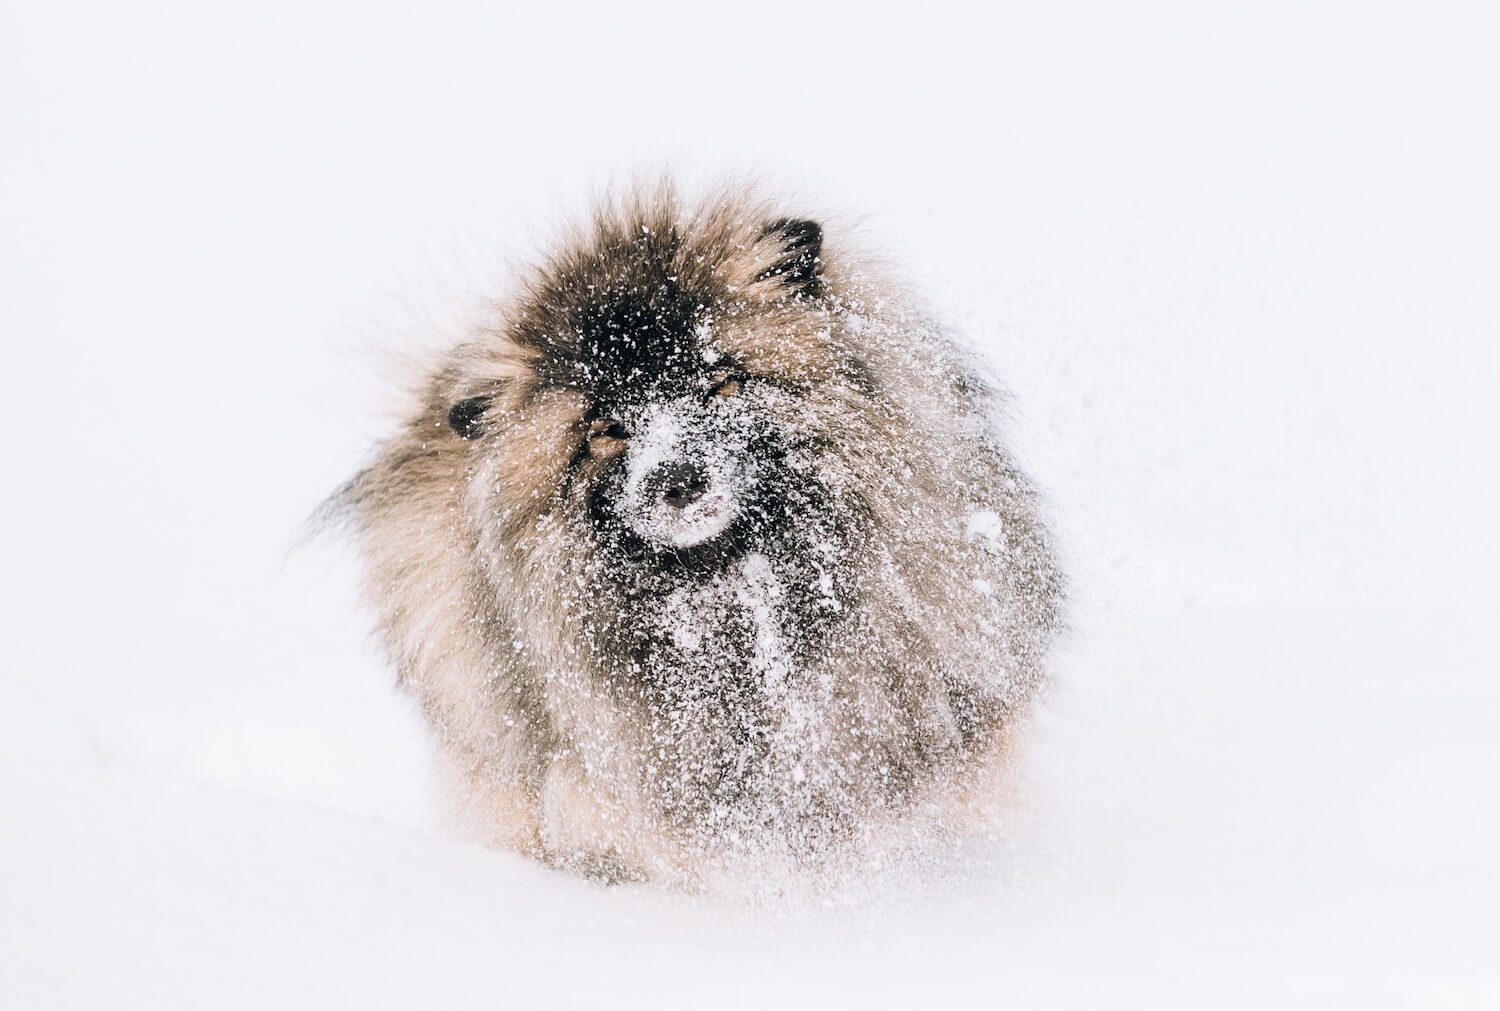 young-keeshond-keeshonden-dog-play-in-snow-winter-PEUCHKN